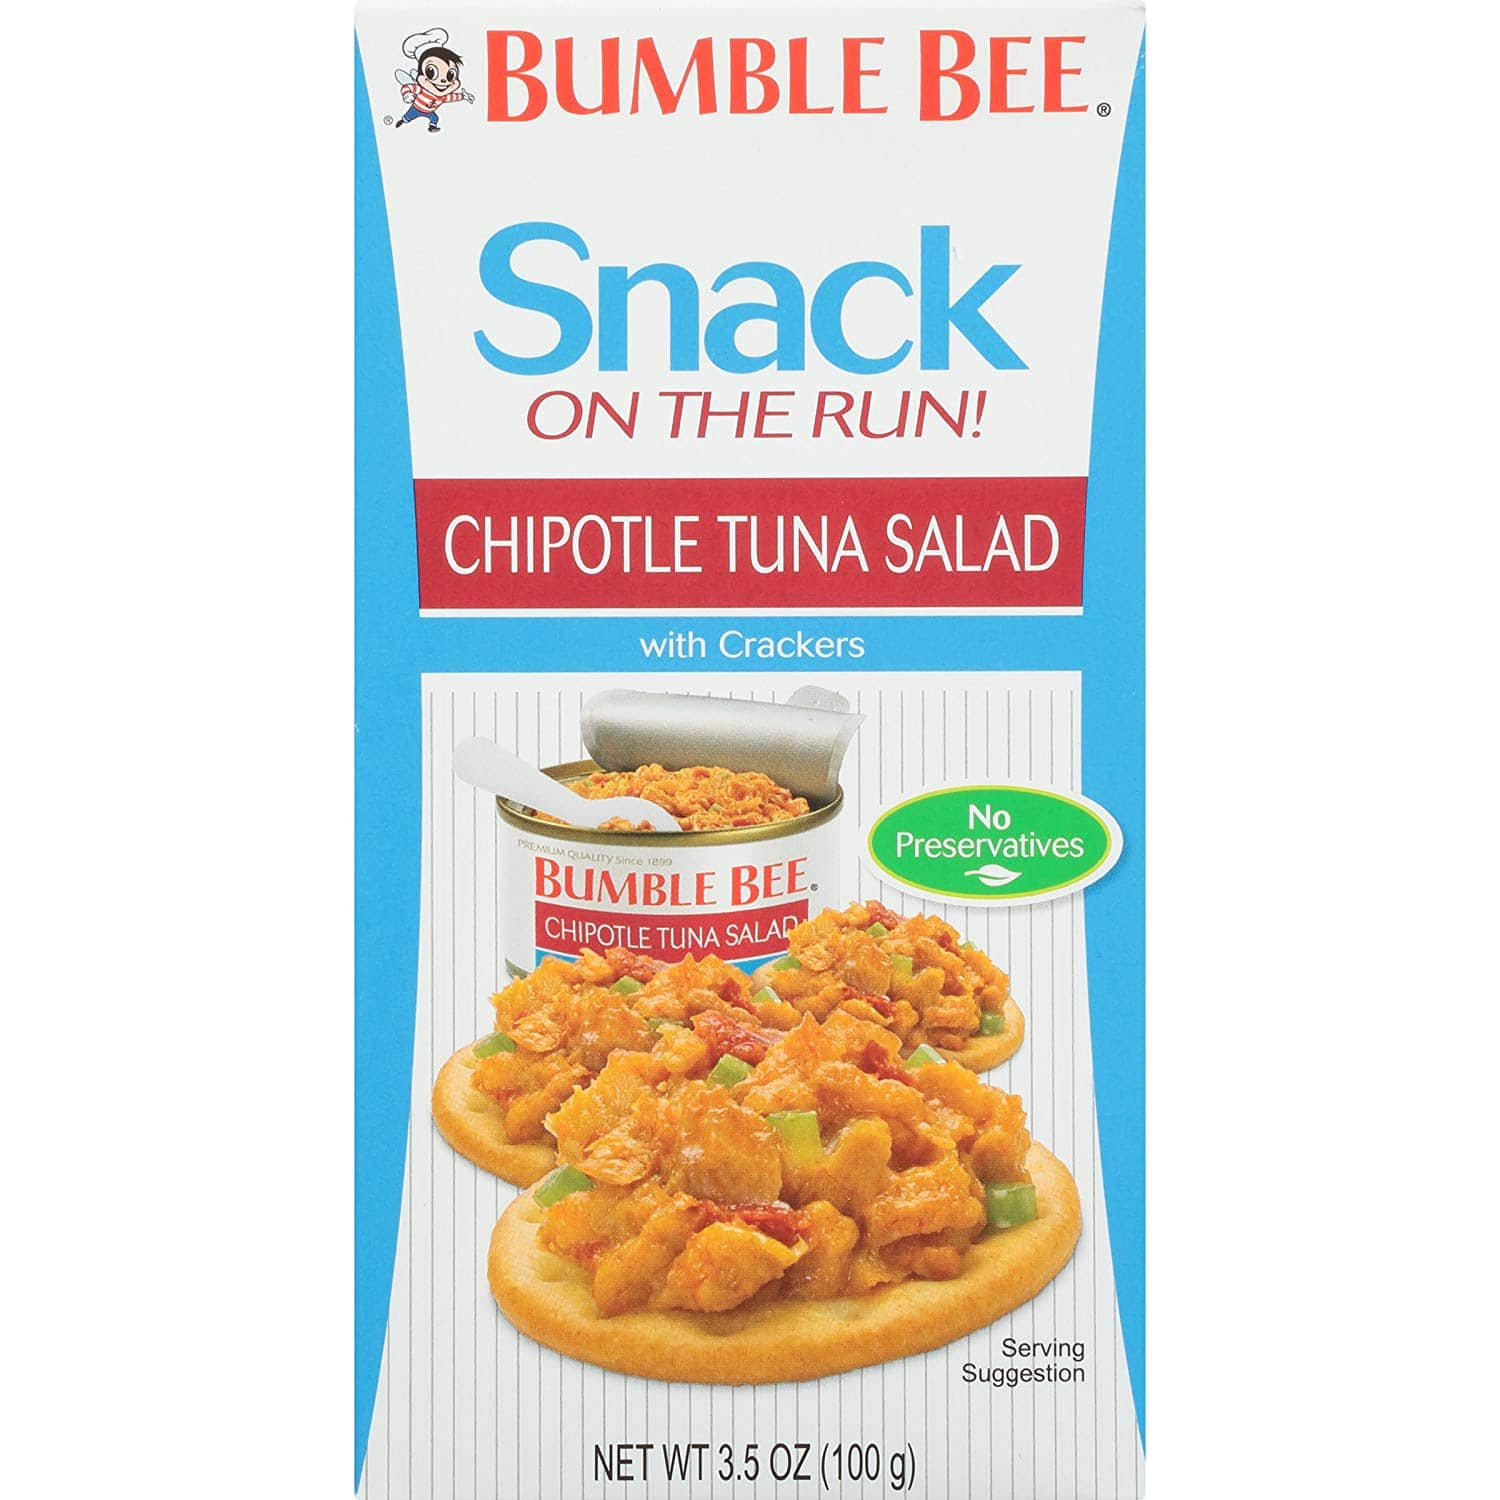 12-Pack 3.5oz Bumble Bee Snack On The Run Chipotle Tuna Salad w/ Crackers $6 w/ S&S or Free Prime Shipping